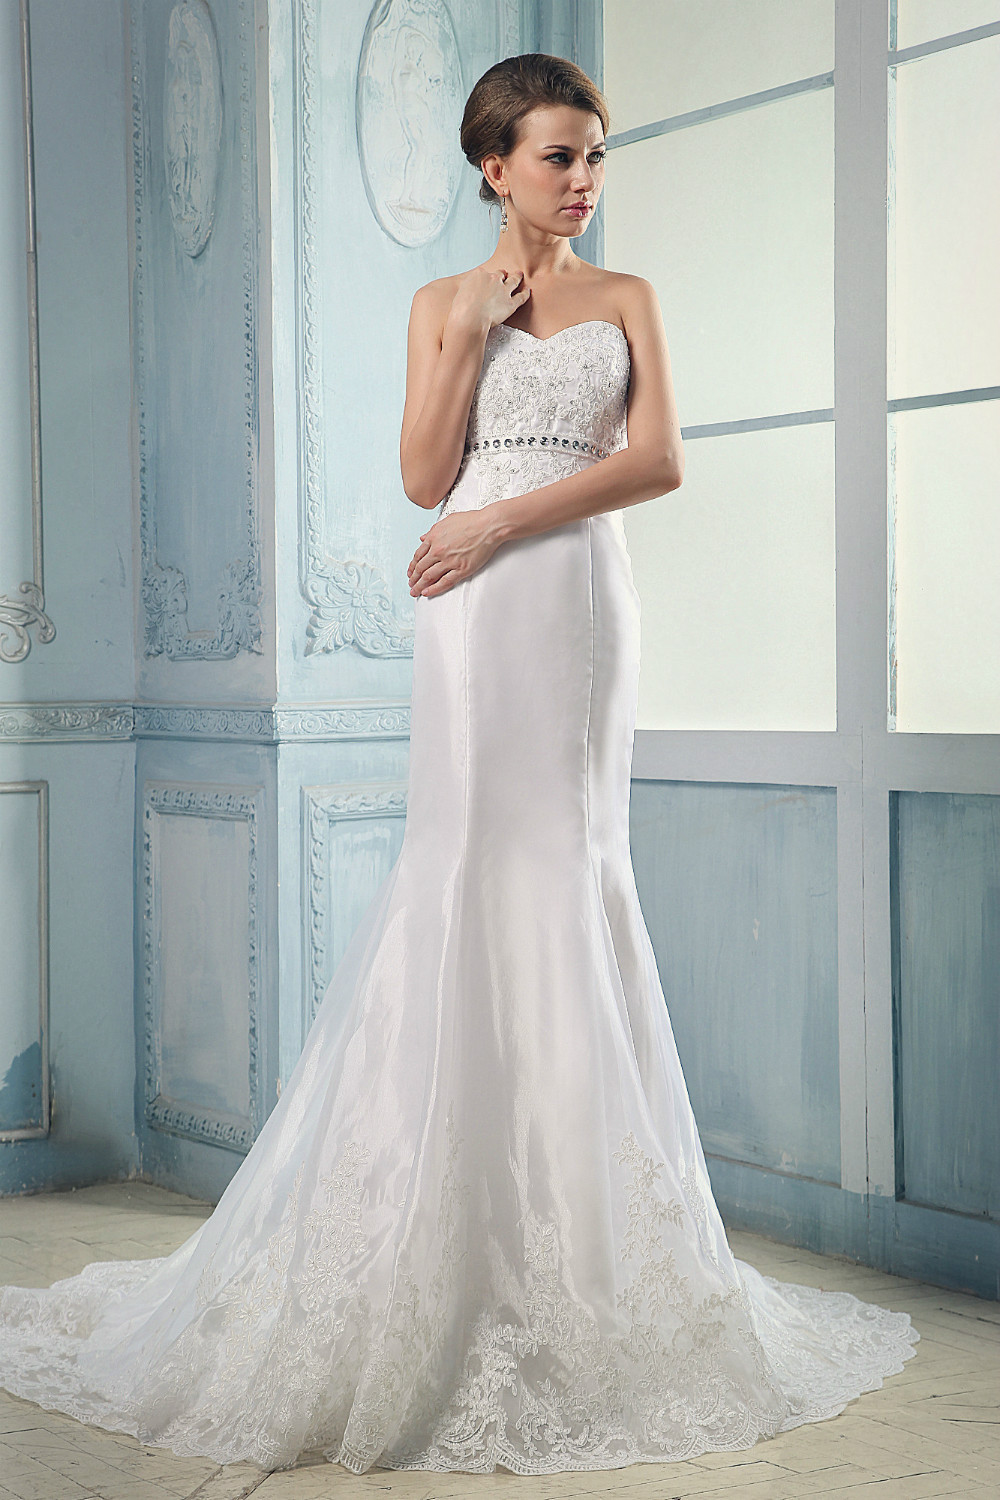 Unique Vestidos Novias Gitanas Ensign - All Wedding Dresses ...